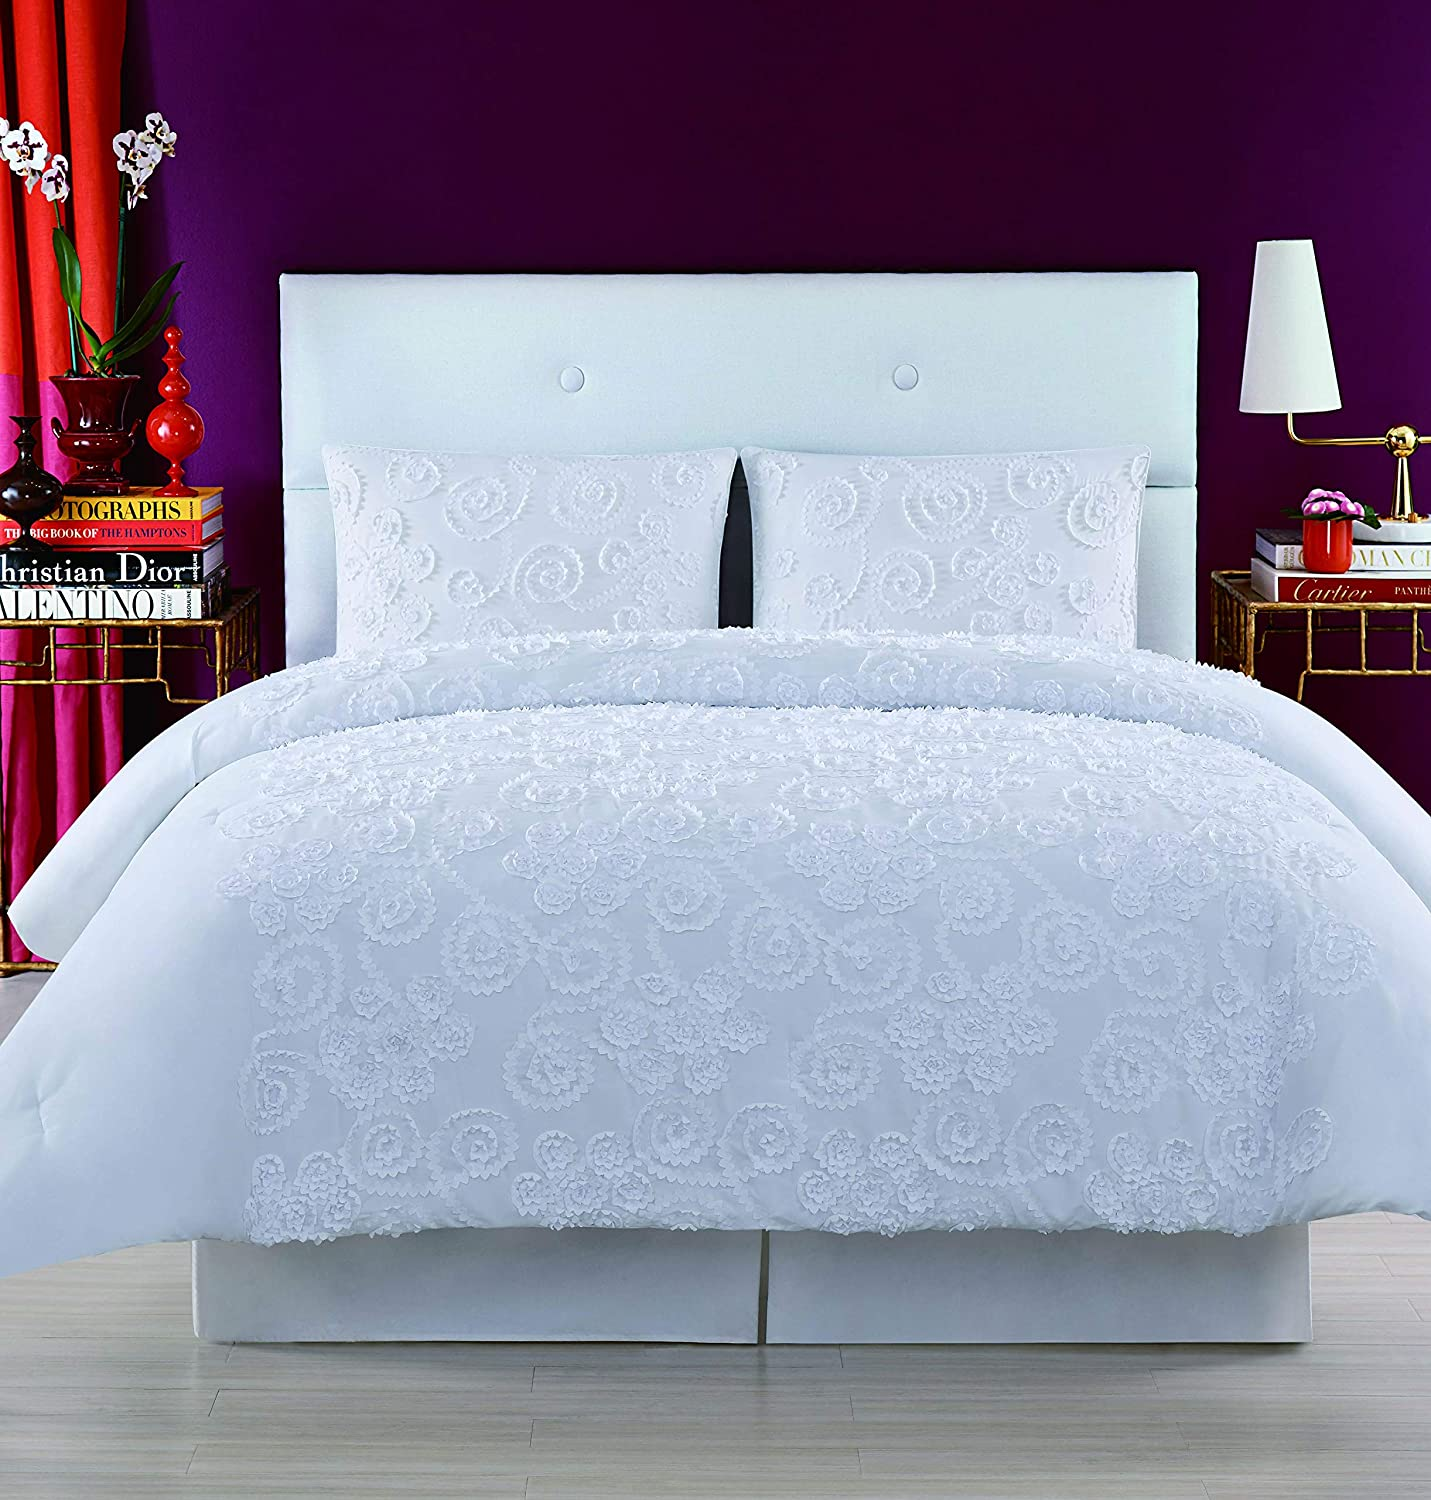 Christian Siriano Pretty Petals Full/Queen Duvet Cover Set, White